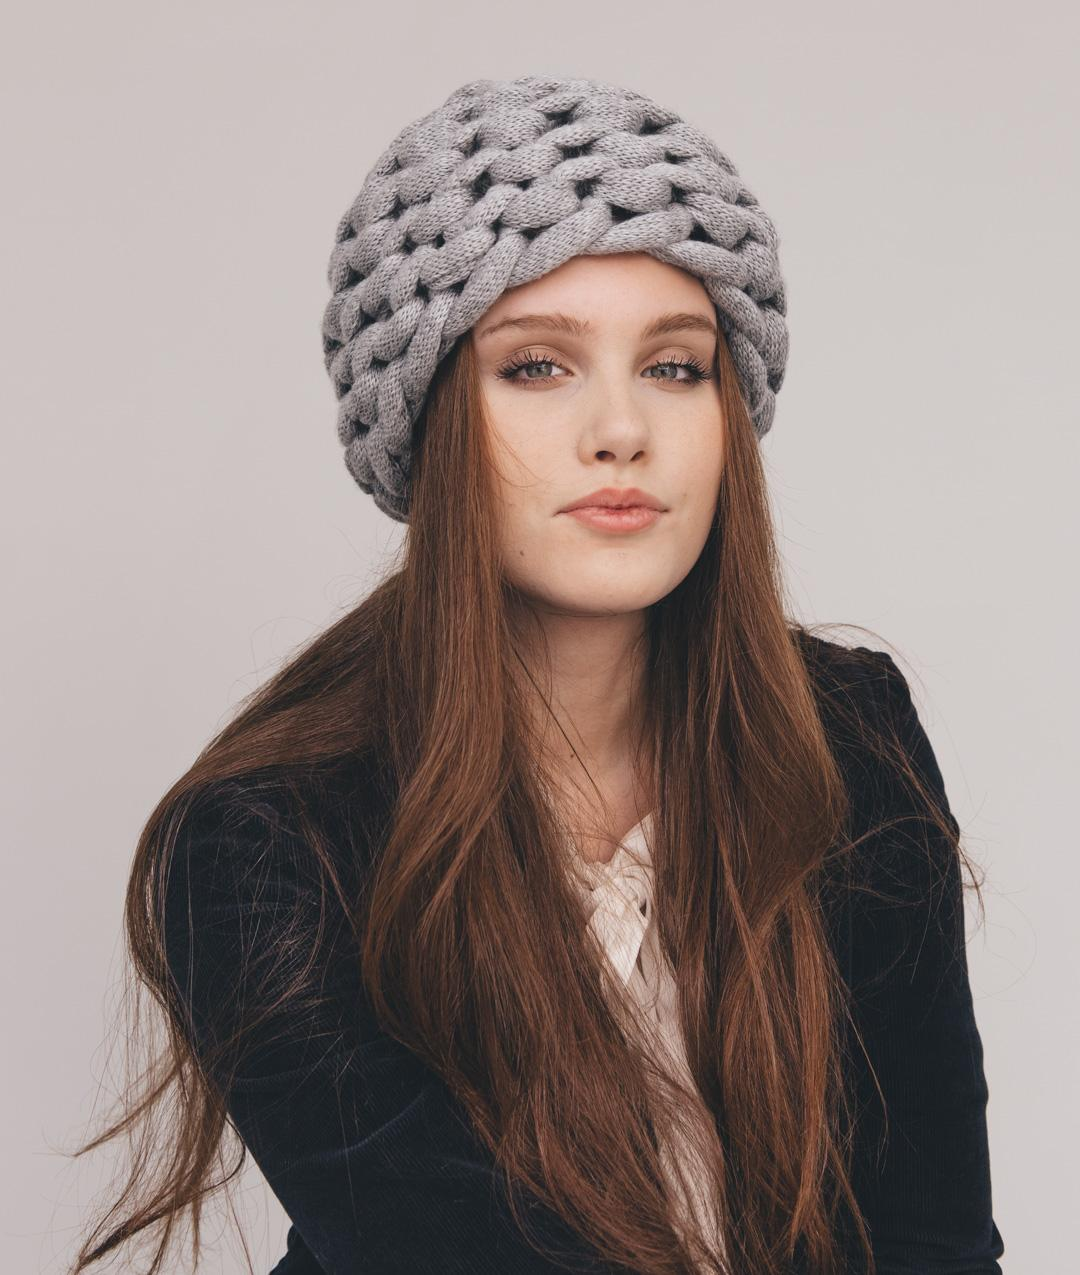 ARM E GIANT KNITTING - Cappelli - XXL HAT - 1